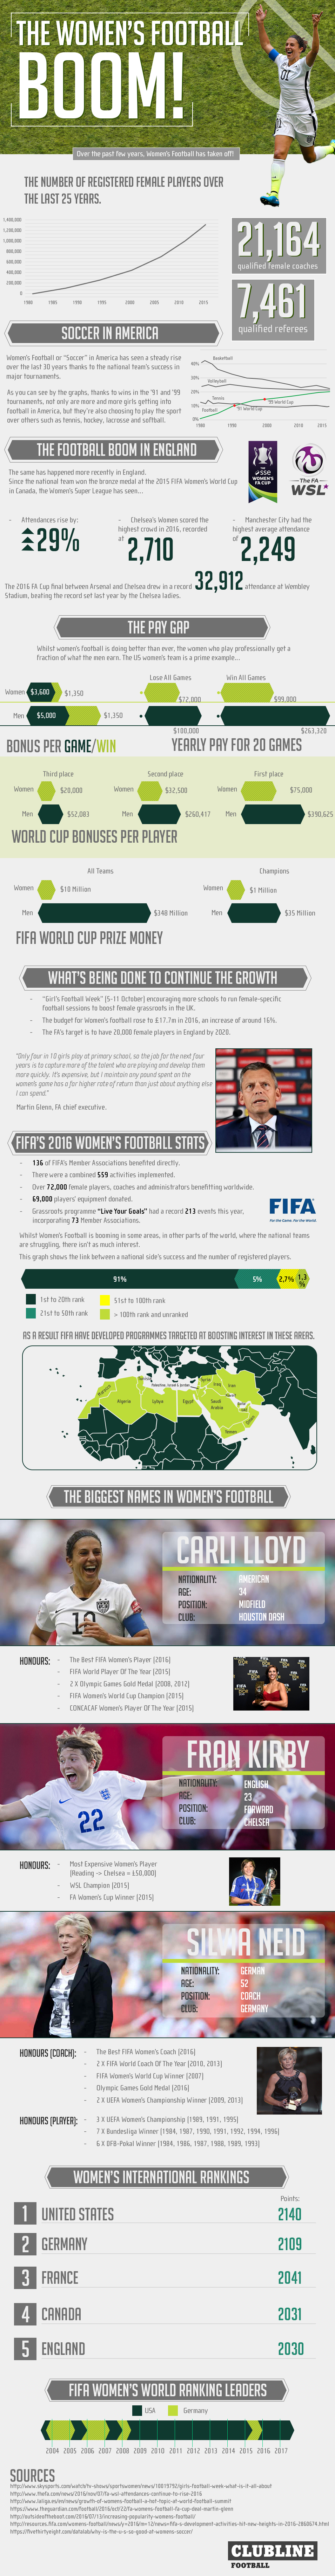 Everything You Need To Know About Women's Football - Infographic